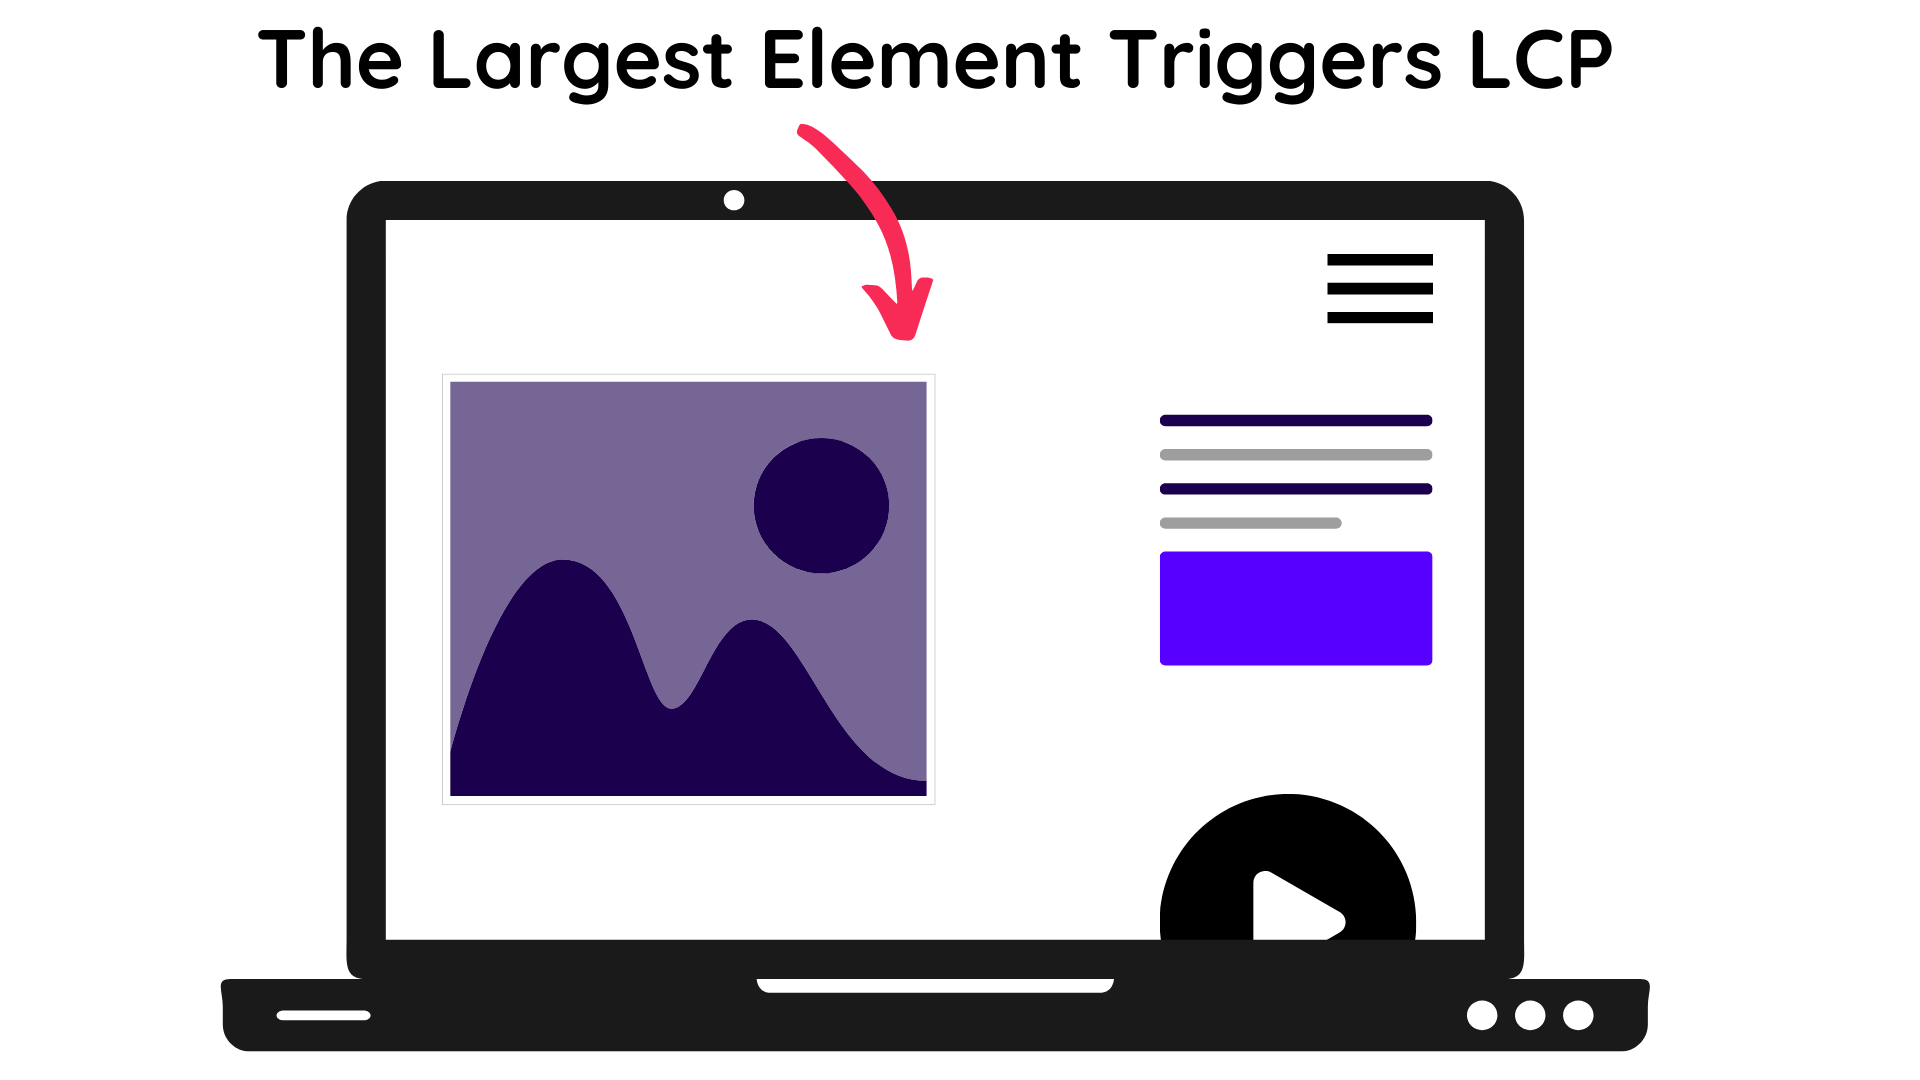 Largest Element Triggers LCP Metric